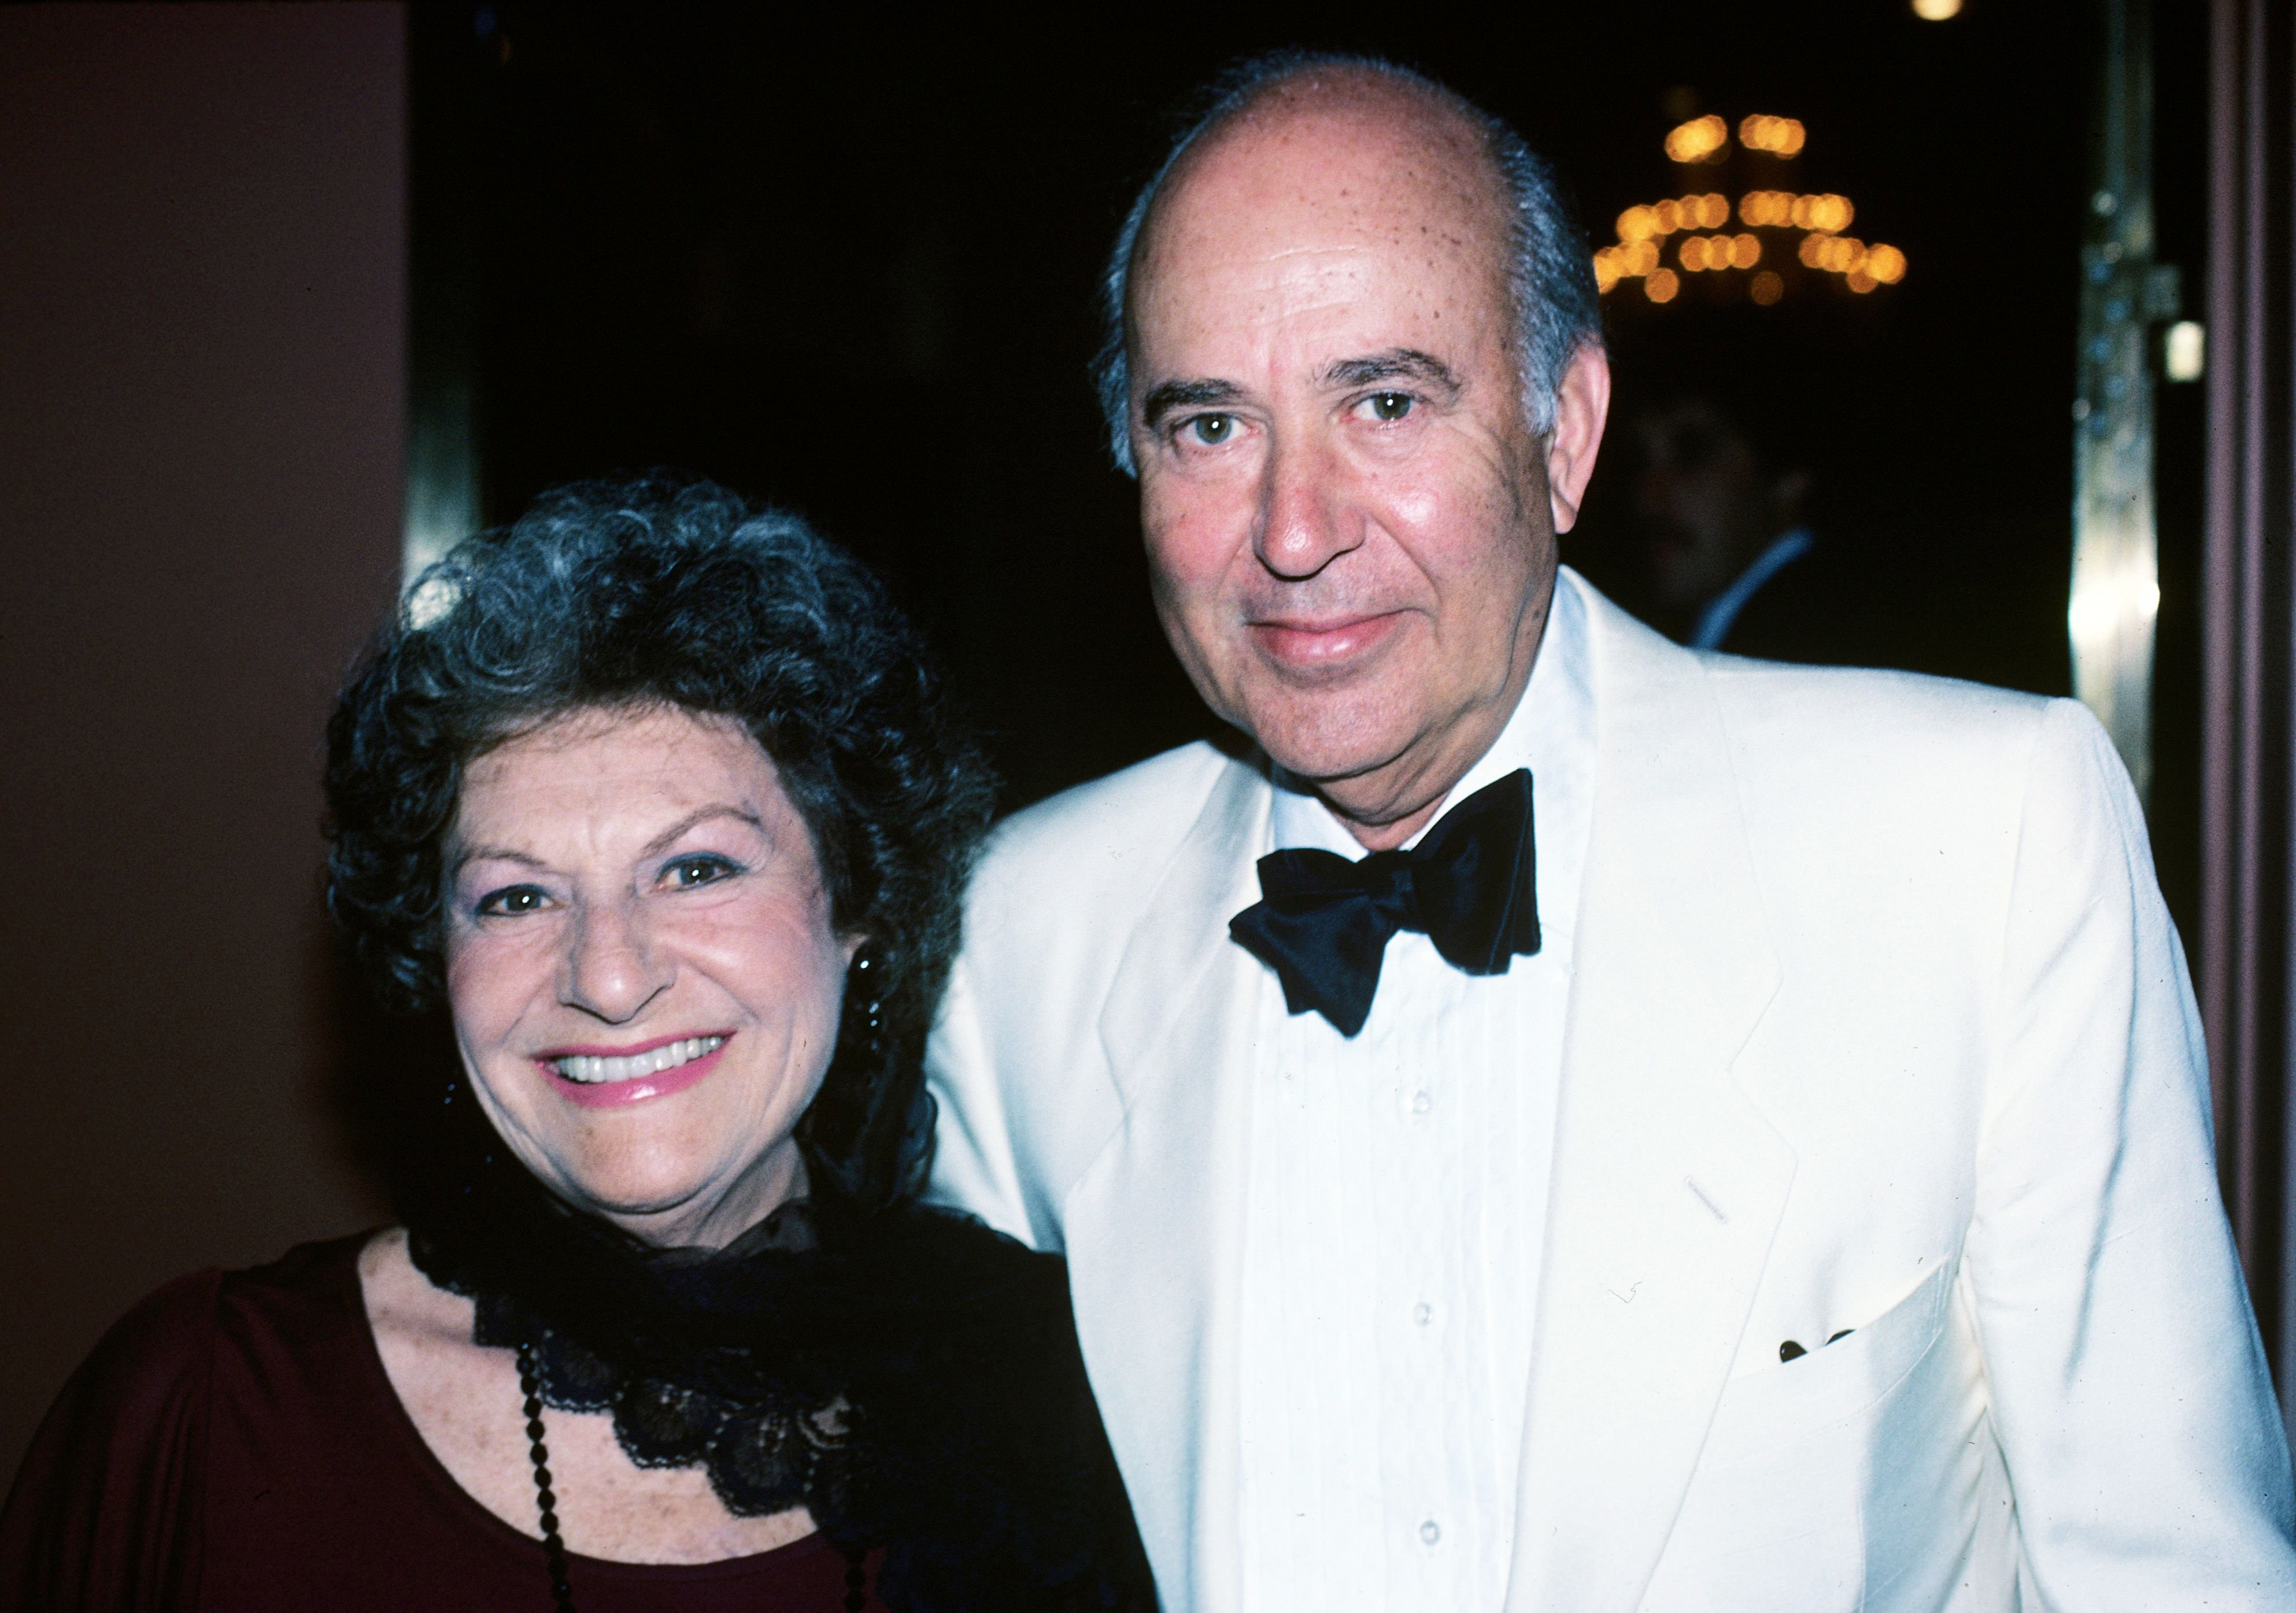 Carl Reiner & wife Estelle Lebost in 1984 in New York City | Source: Getty Images